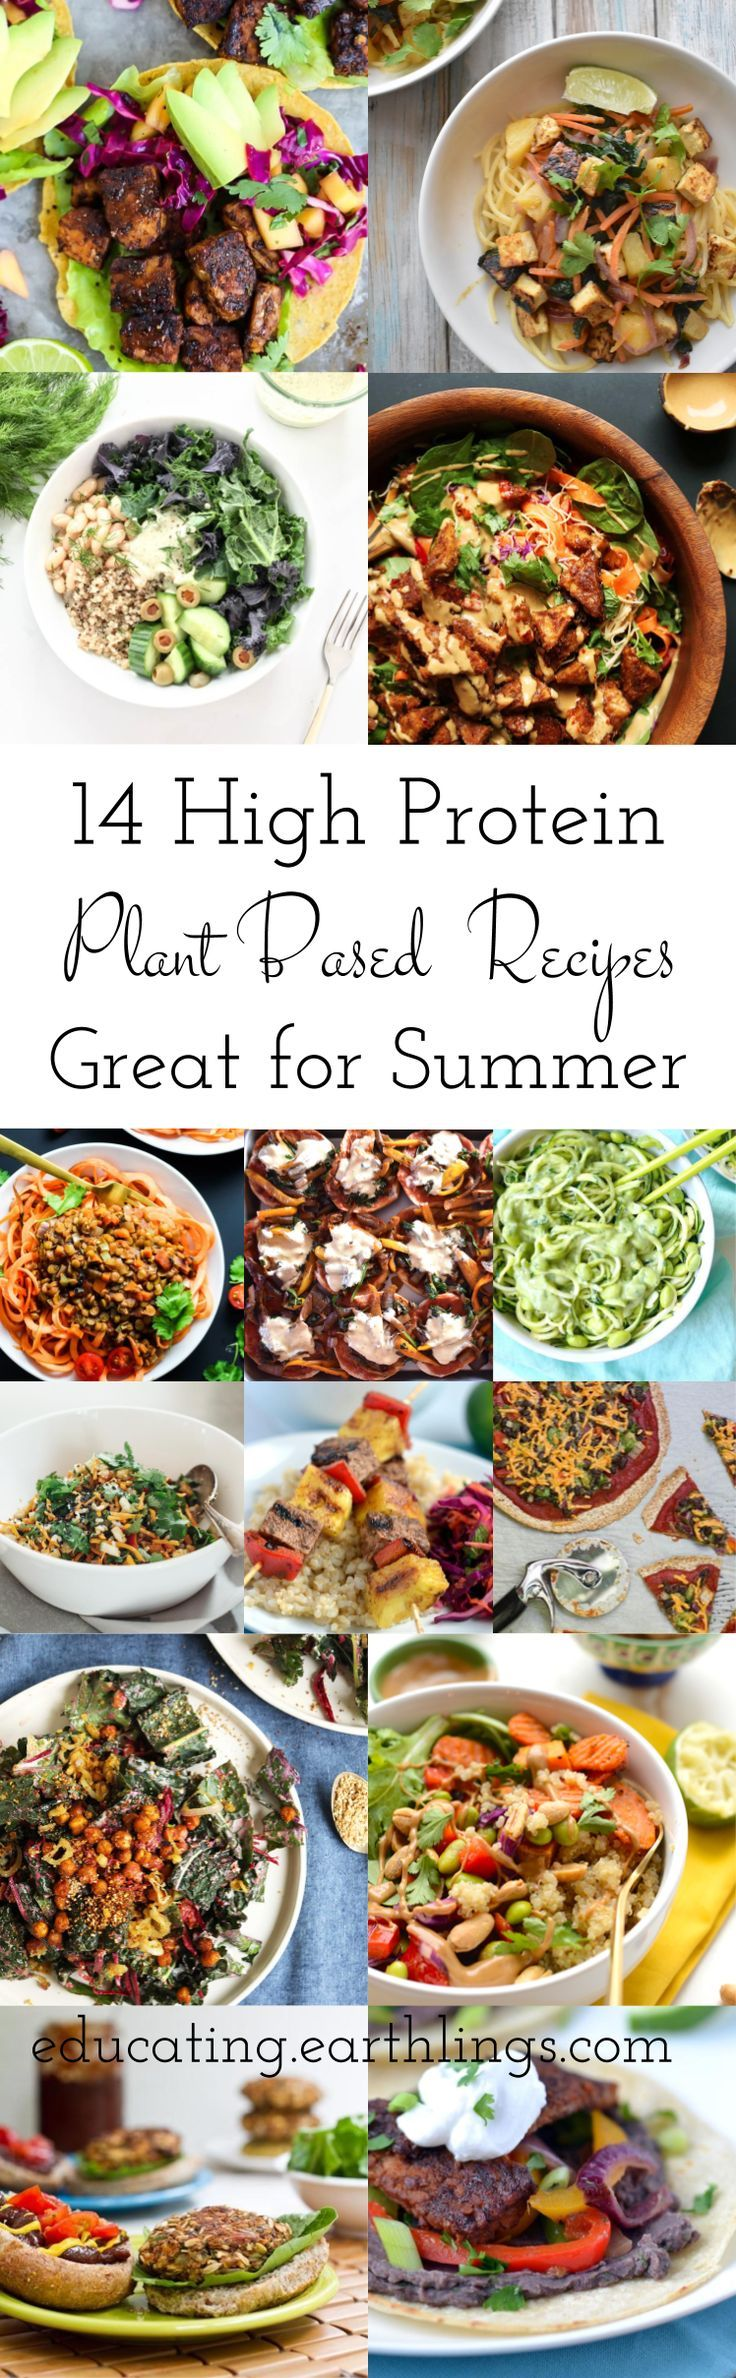 14 high protein plant based recipes high protein plant based and 14 high protein plant based recipes forumfinder Gallery